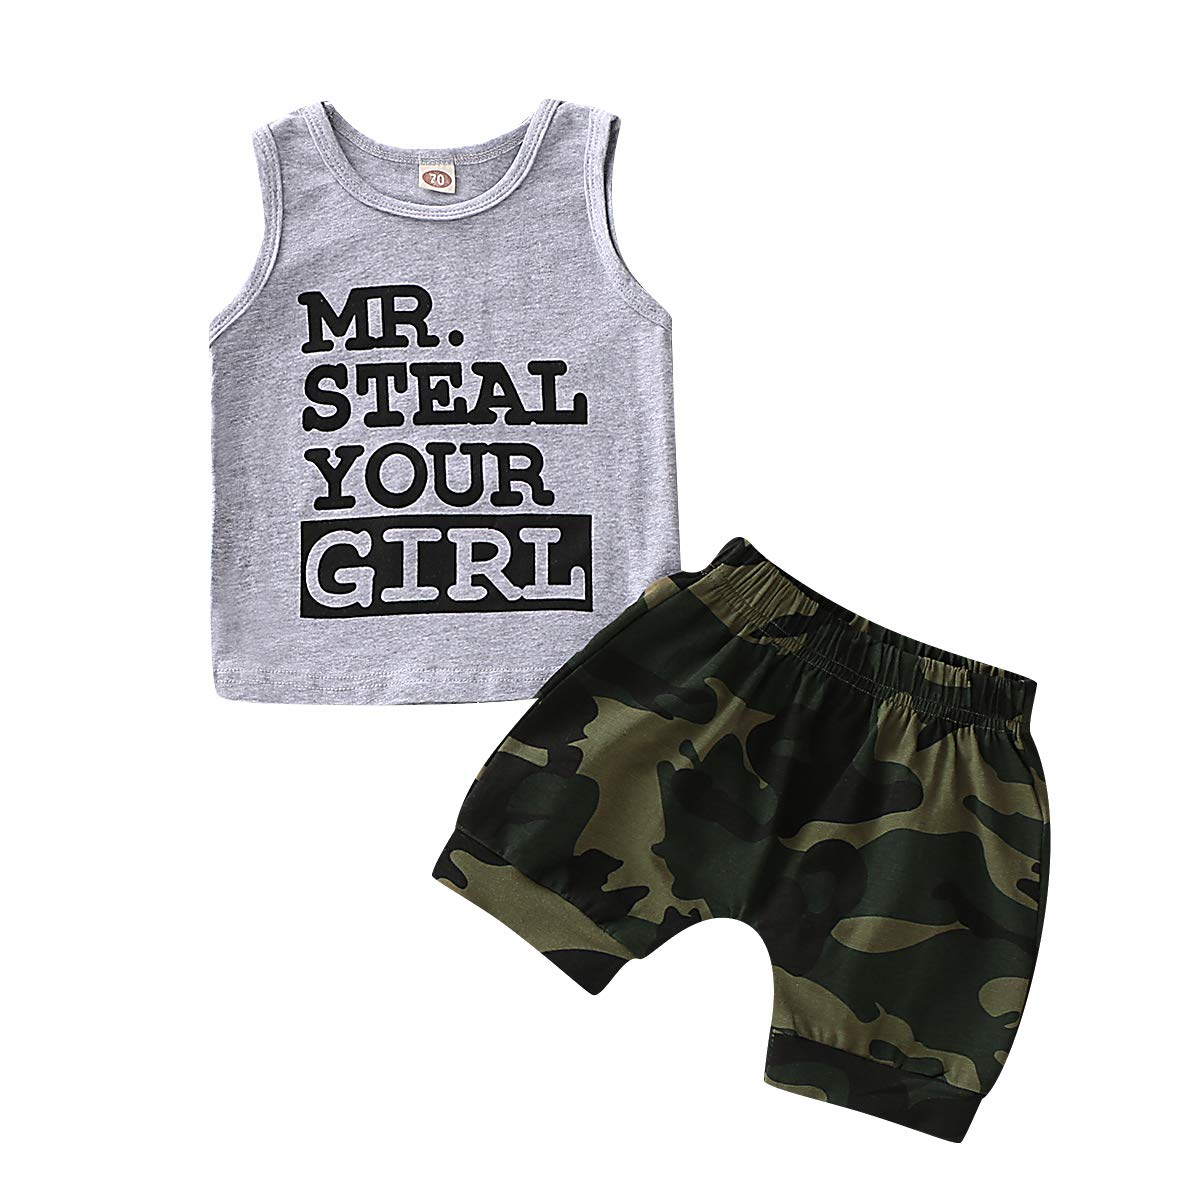 WESIDOM Toddler Infant Baby Boy Clothes,Newborn Sleeveless Vest and Shorts Pant Outfits Set for Summer